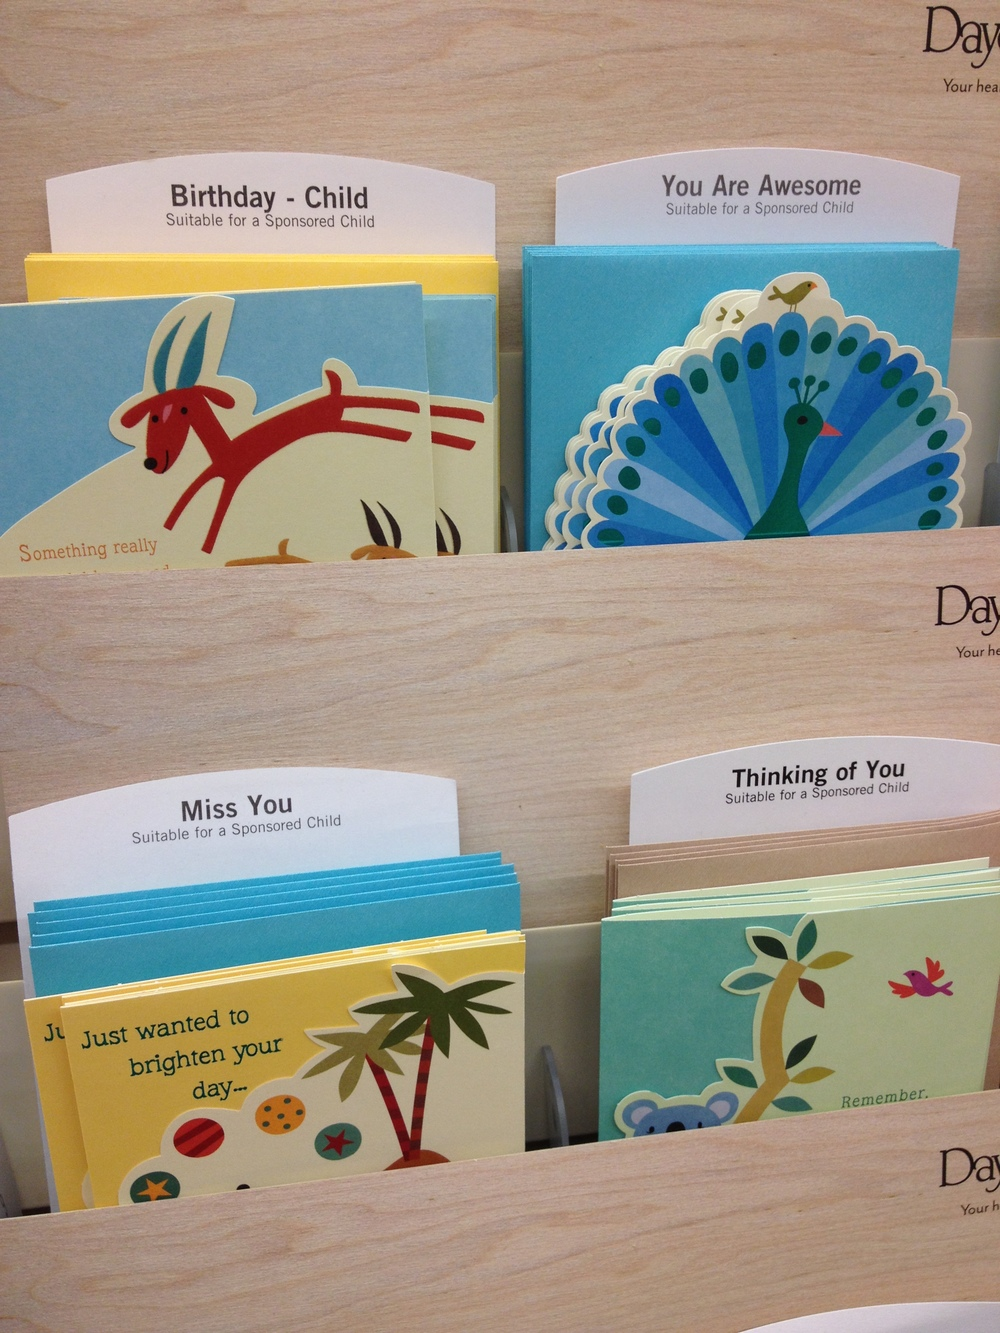 Found Colors of Compassion cards at Hobby Lobby